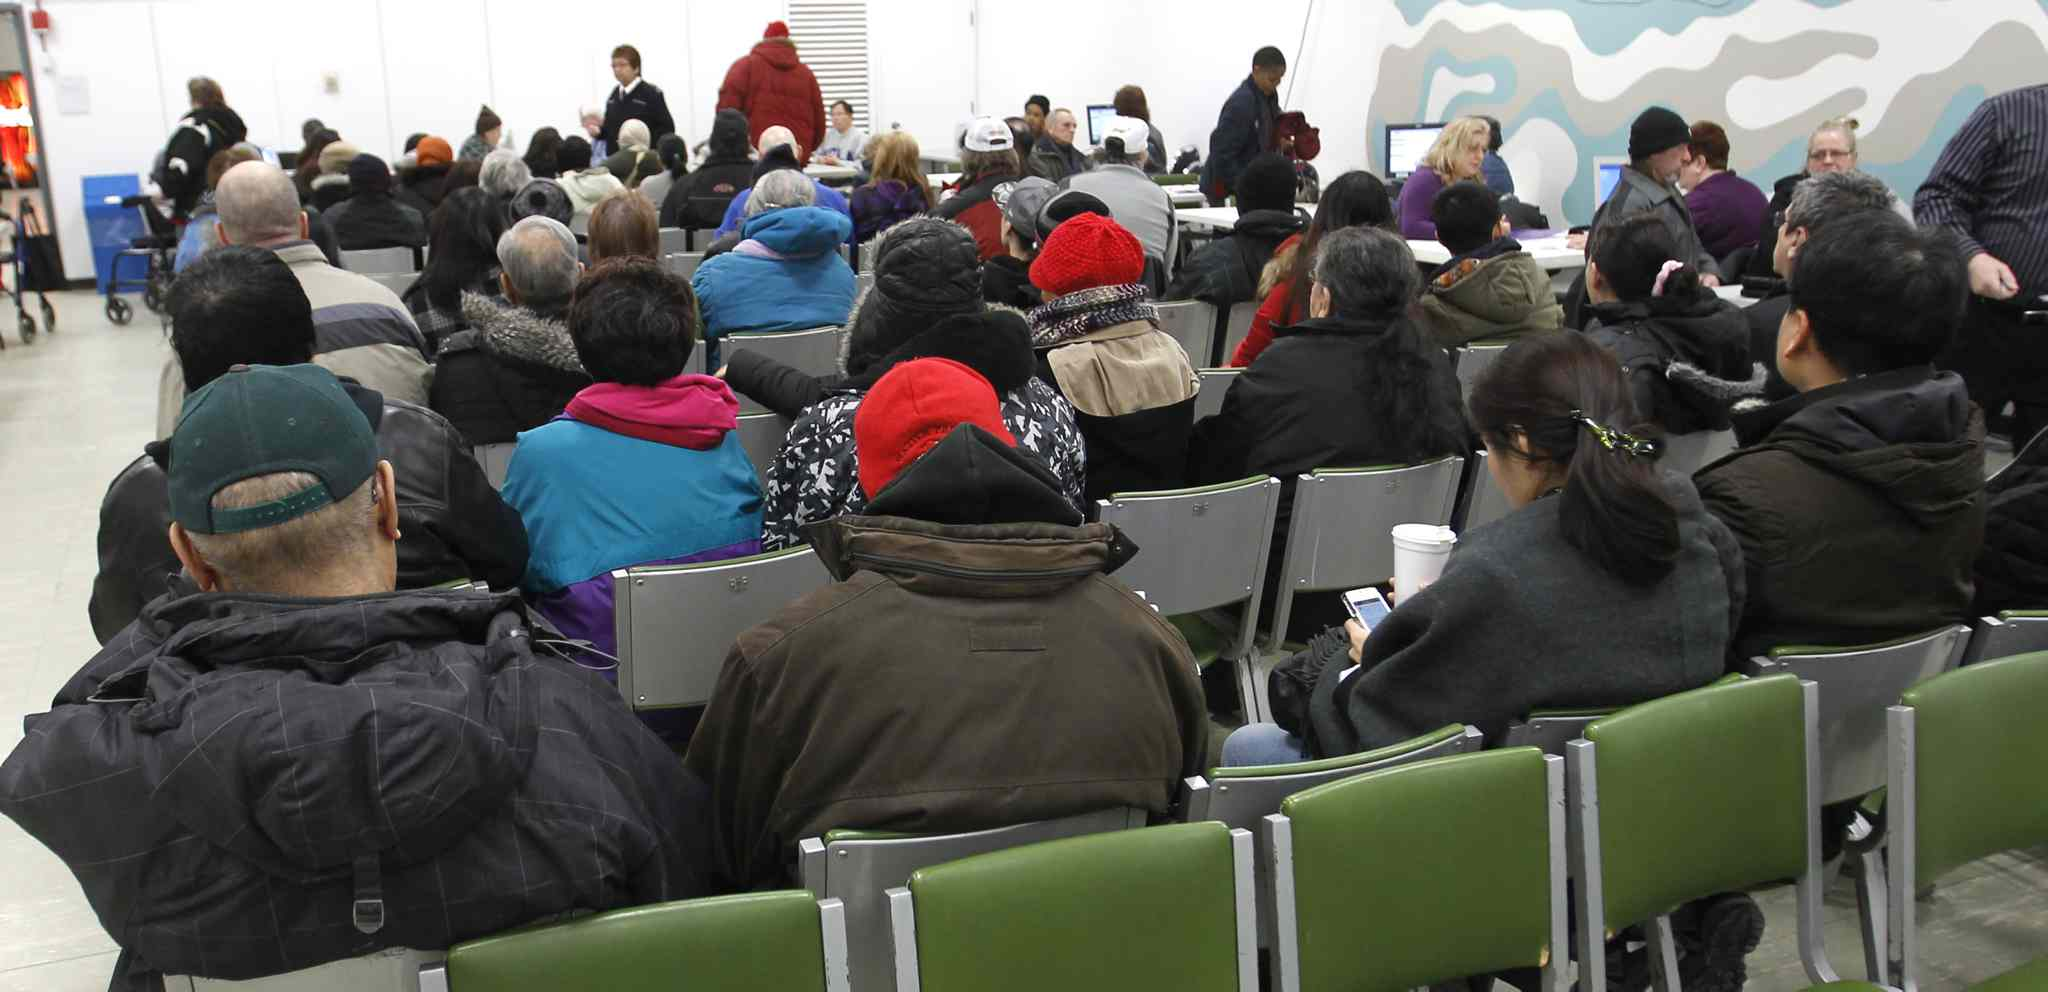 Dozens of low-income Winnipeggers wait in the Norquay Building to have their taxes prepared by the non-profit Community Financial Counselling Service, which makes sure they maximize their refunds.